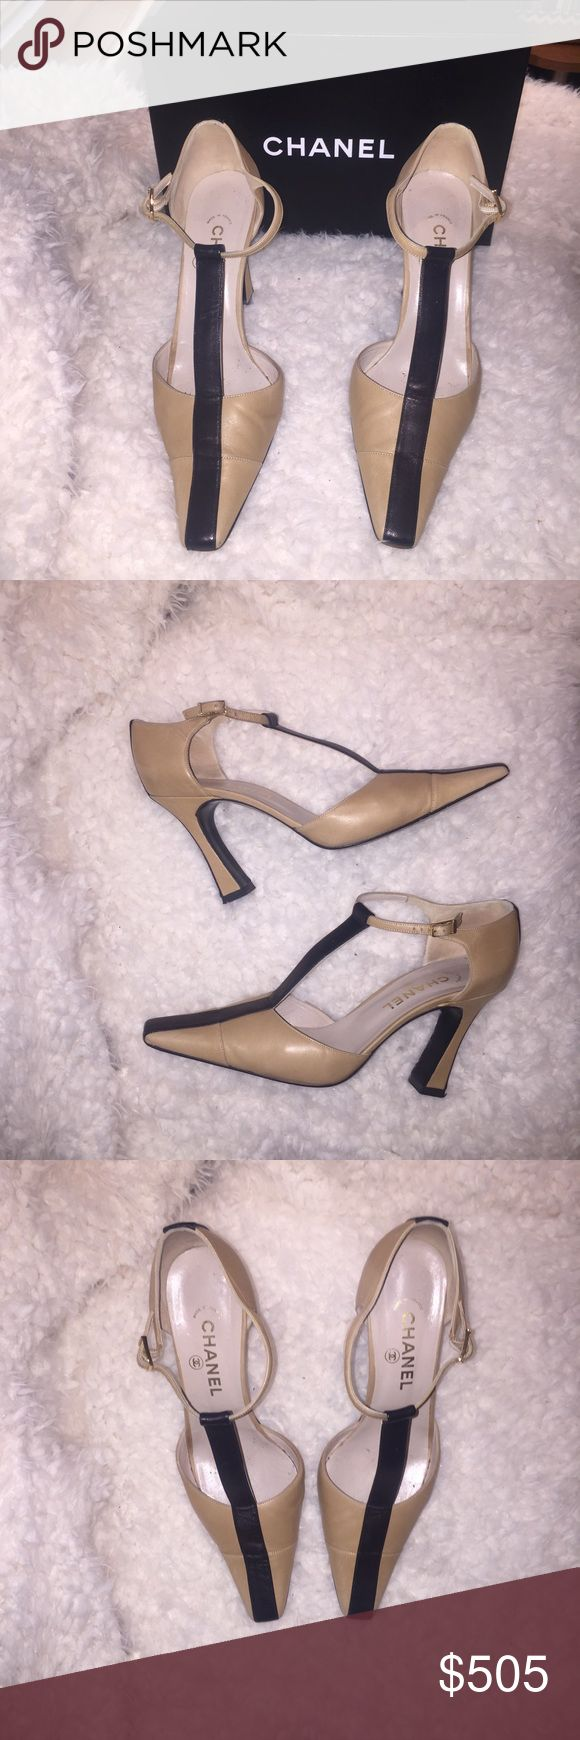 """Authentic Chanel two tone heels Used but in very good condition. Heel height is 4"""" CHANEL Shoes Heels"""